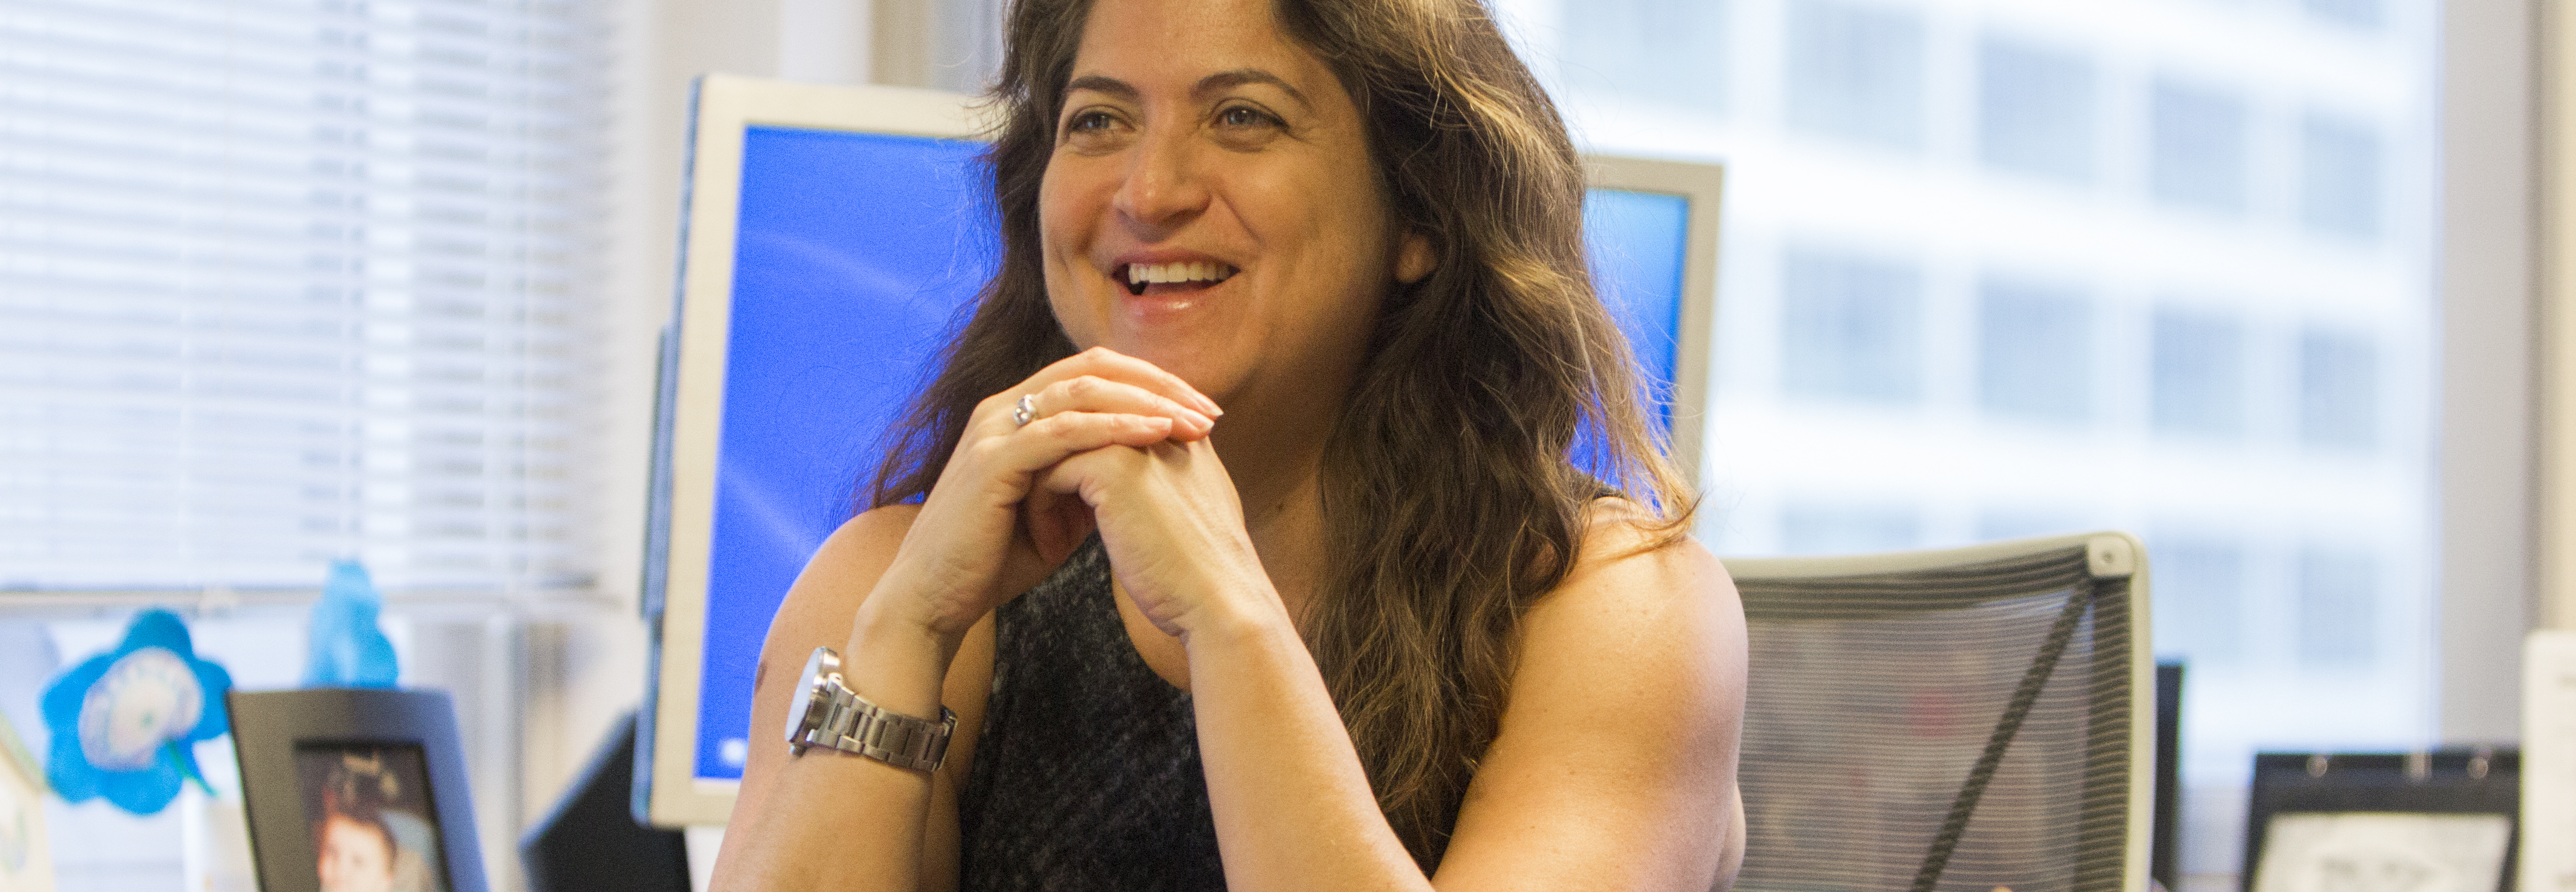 Cynthia Figueroa, Philadelphia's Commissioner of the Department of Human Services. Foto: Samantha Laub / AL DÍA News